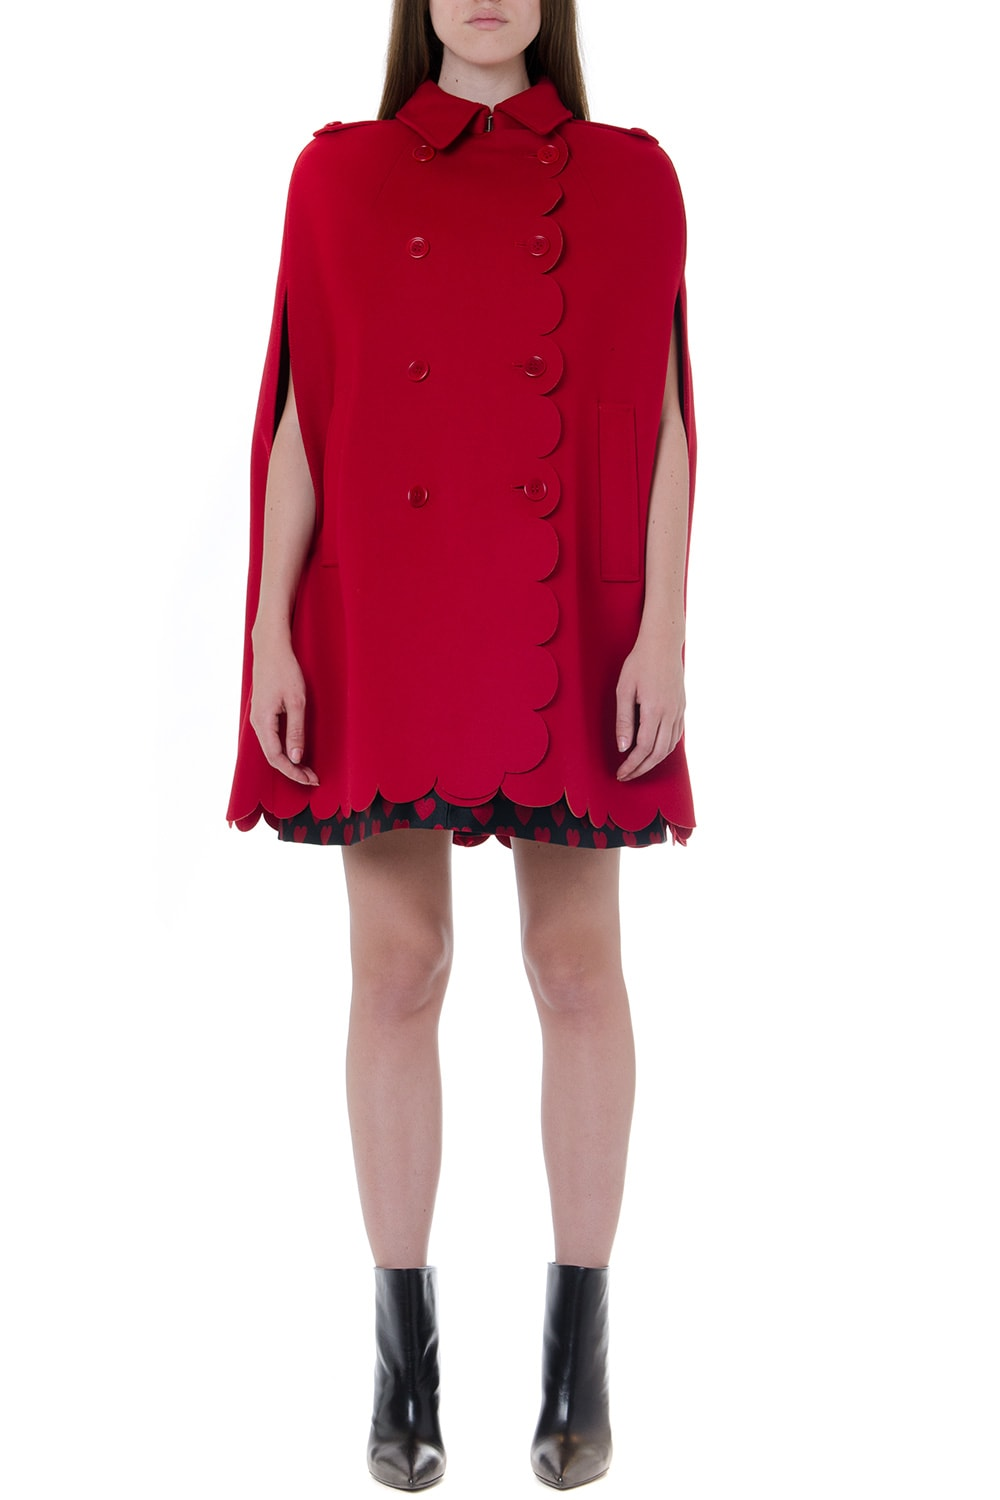 RED Valentino Scalloped Double-breasted Wool-cashmere Blend Cape